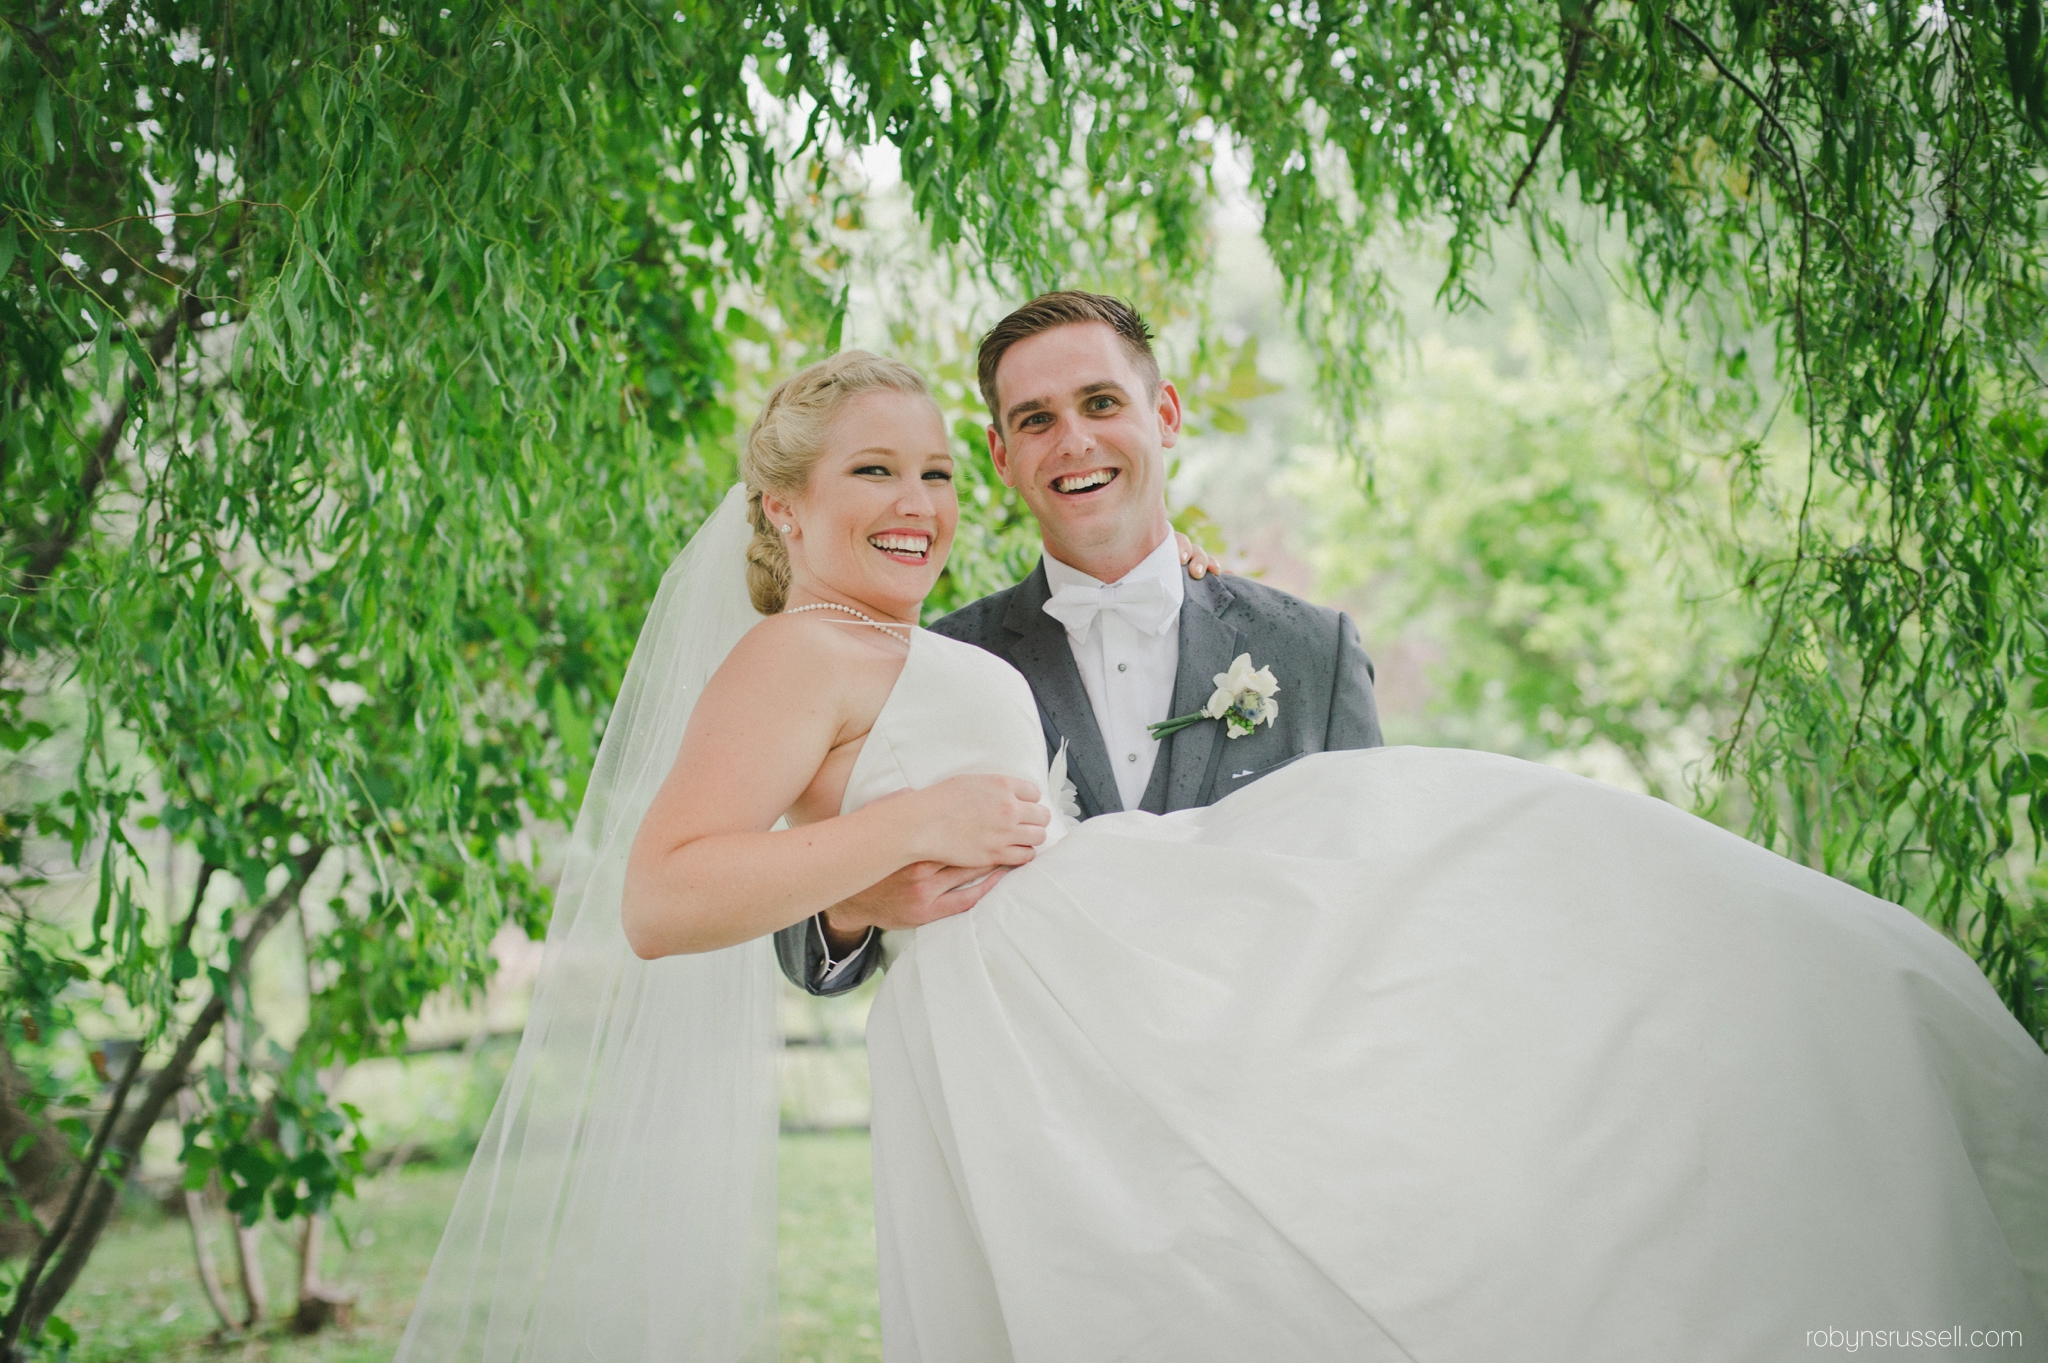 0498-bride-and-groom-in-love-kurtz-orchard.jpg